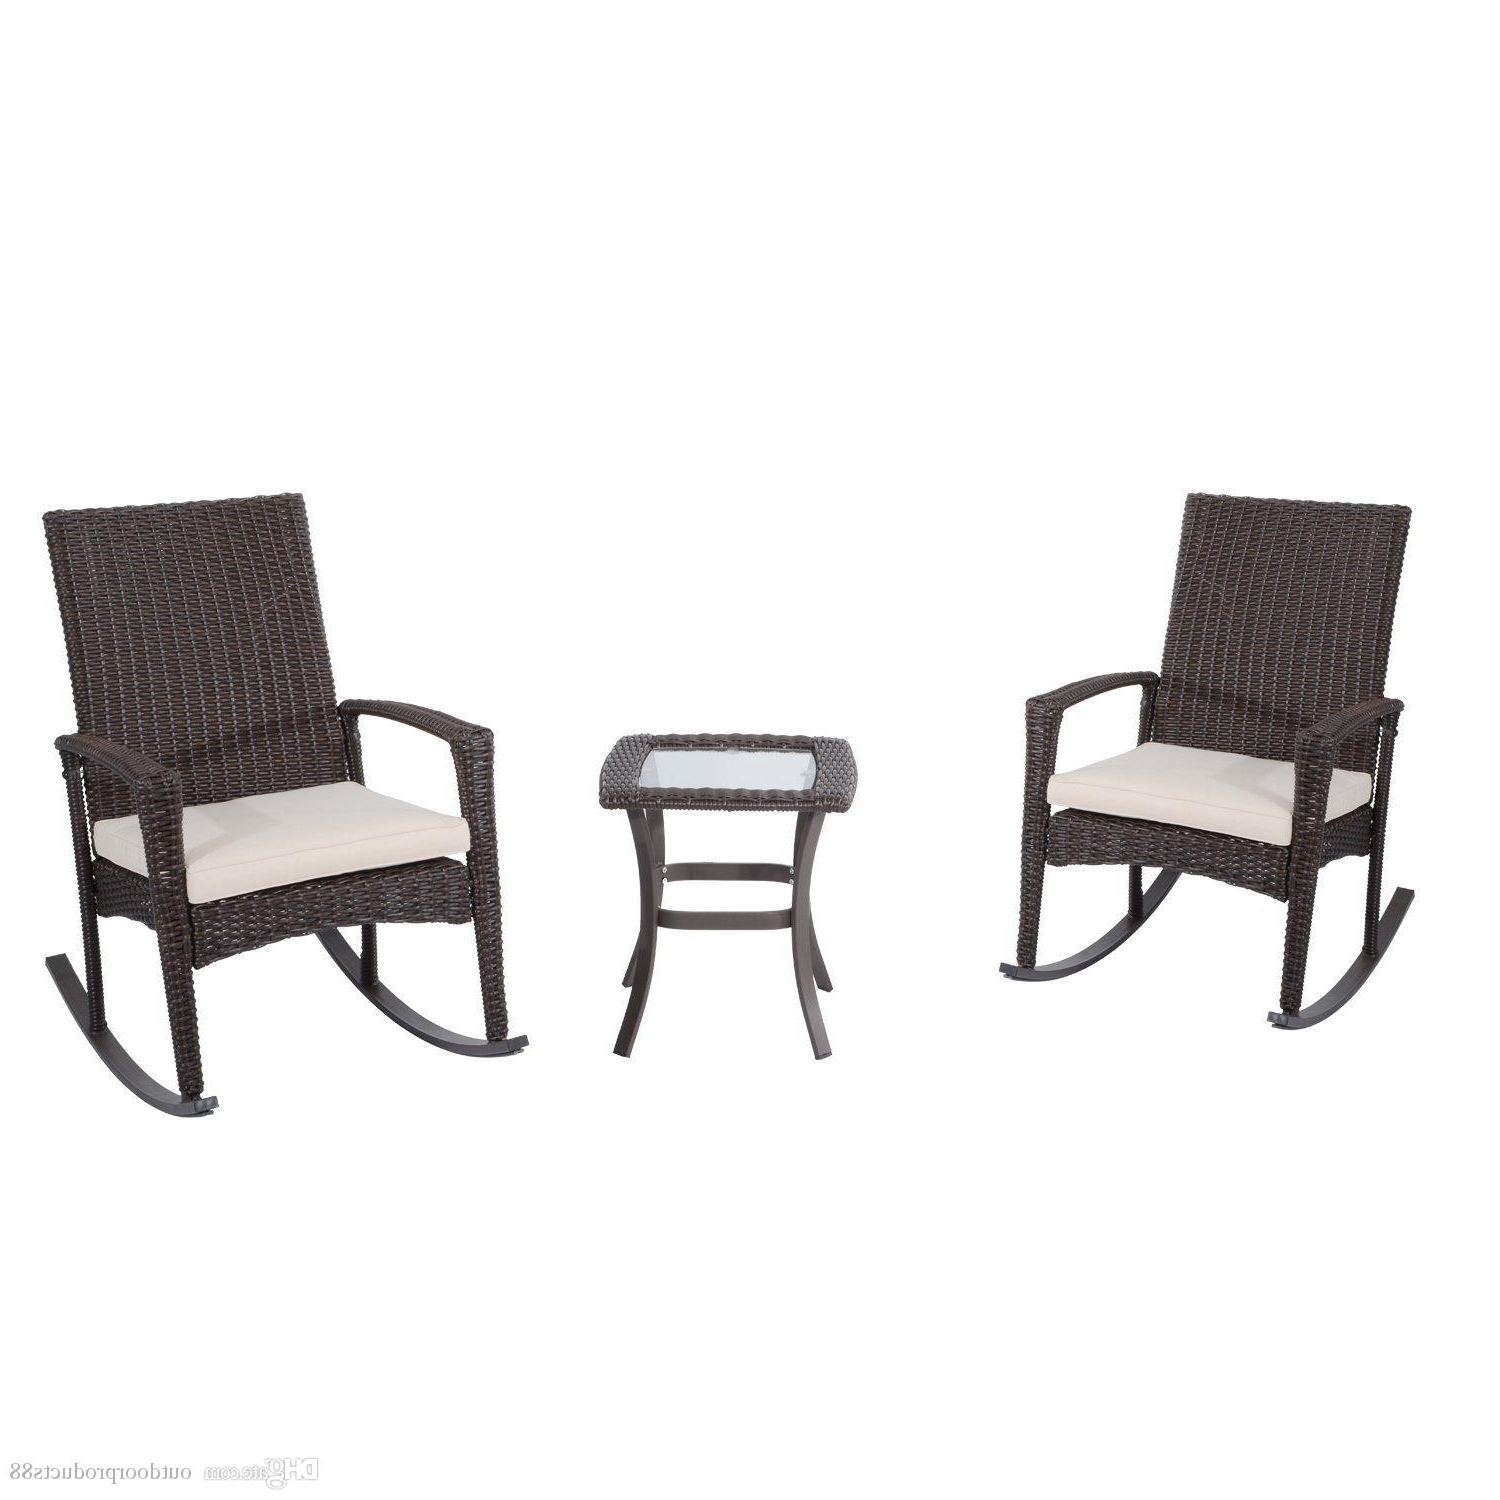 Outdoor Rocking Chairs With Table Regarding Preferred 2018 Outdoor Rocking Chair And Table Set,rocking Rattan Wicker Chiar (View 8 of 20)